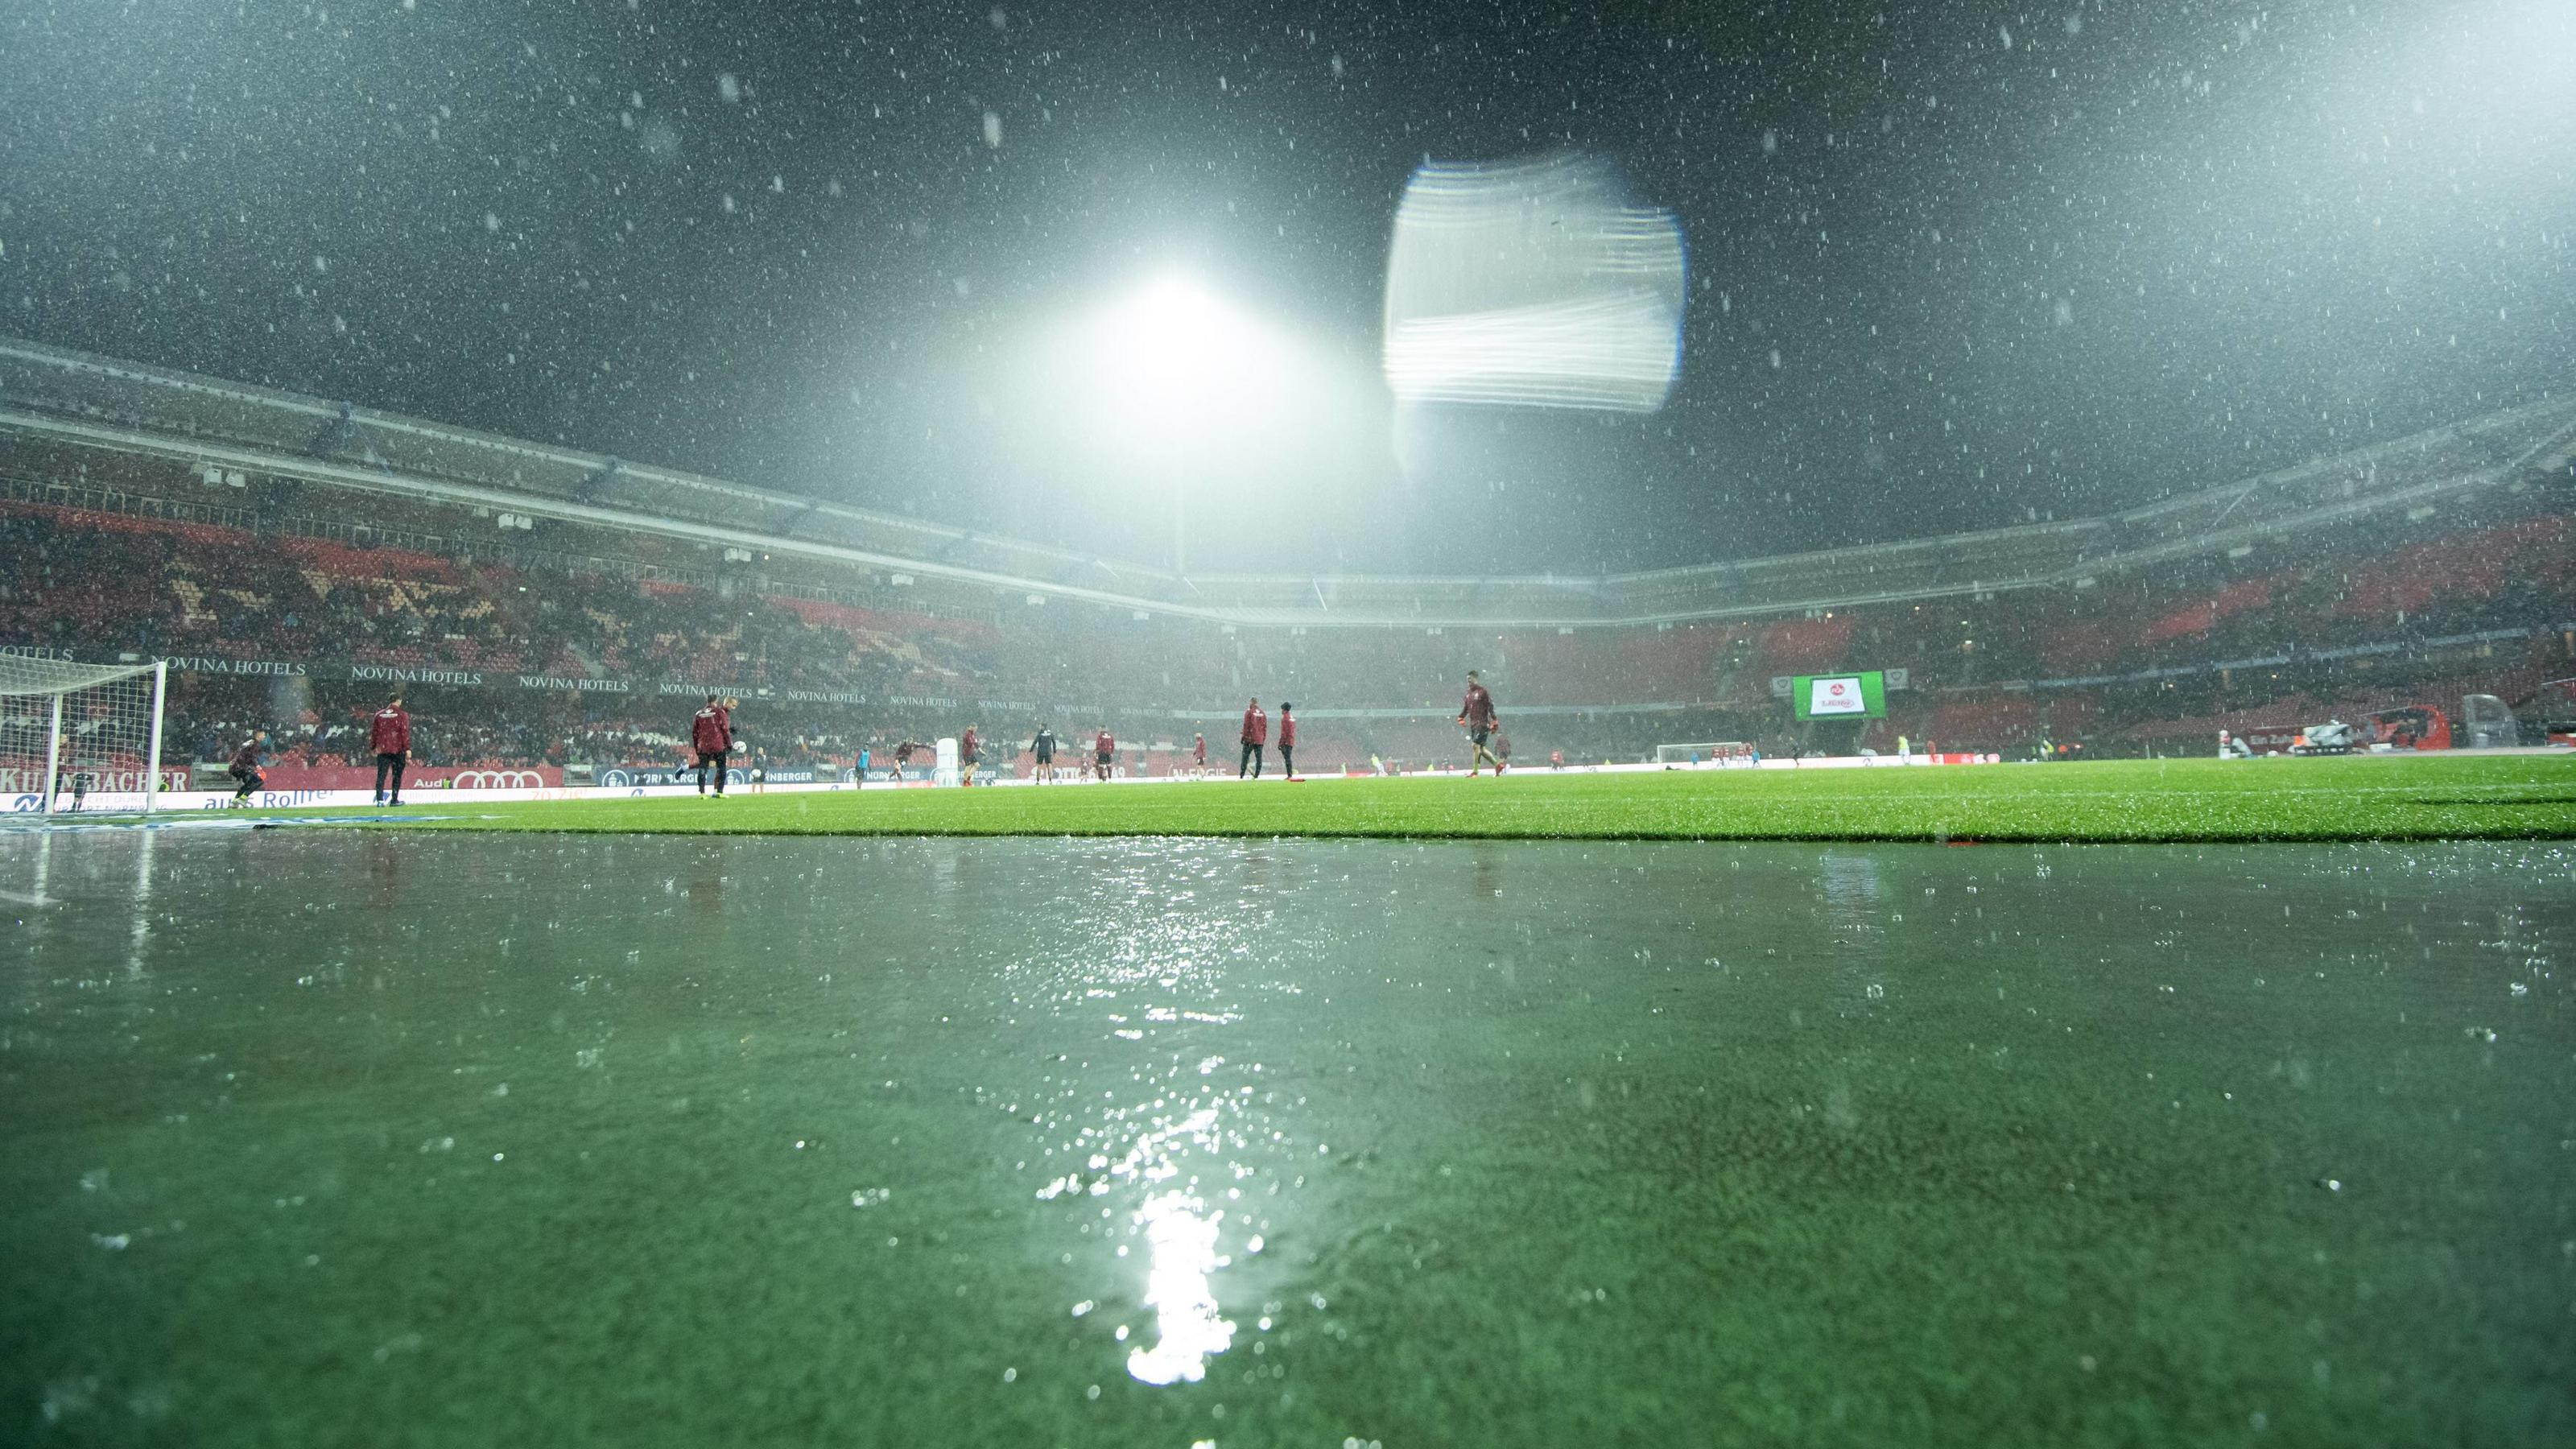 03.12.2018, xkvx, Fussball 1.Bundesliga, 1.FC Nuernberg - Bayer 04 Leverkusen emspor, v.l. Arena Ansicht / Regen (DFL/DFB REGULATIONS PROHIBIT ANY USE OF PHOTOGRAPHS as IMAGE SEQUENCES and/or QUASI-VIDEO) Nuernberg *** 03 12 2018 xkvx Football 1 Bund